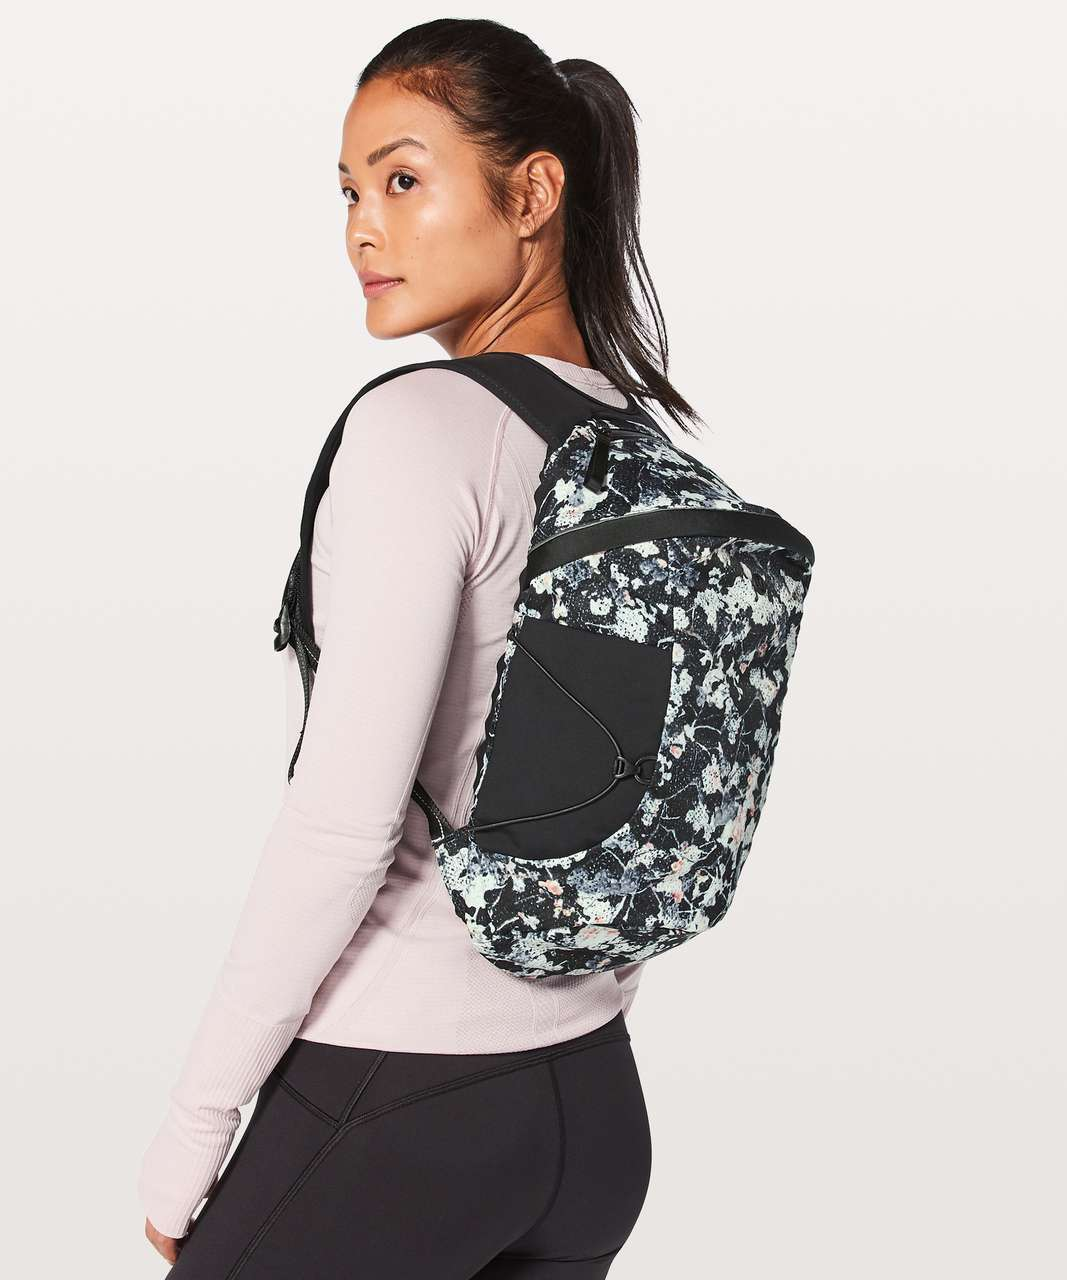 Lululemon Run All Day Backpack II *13L - Mini Spring Bloom Multi Black / Black